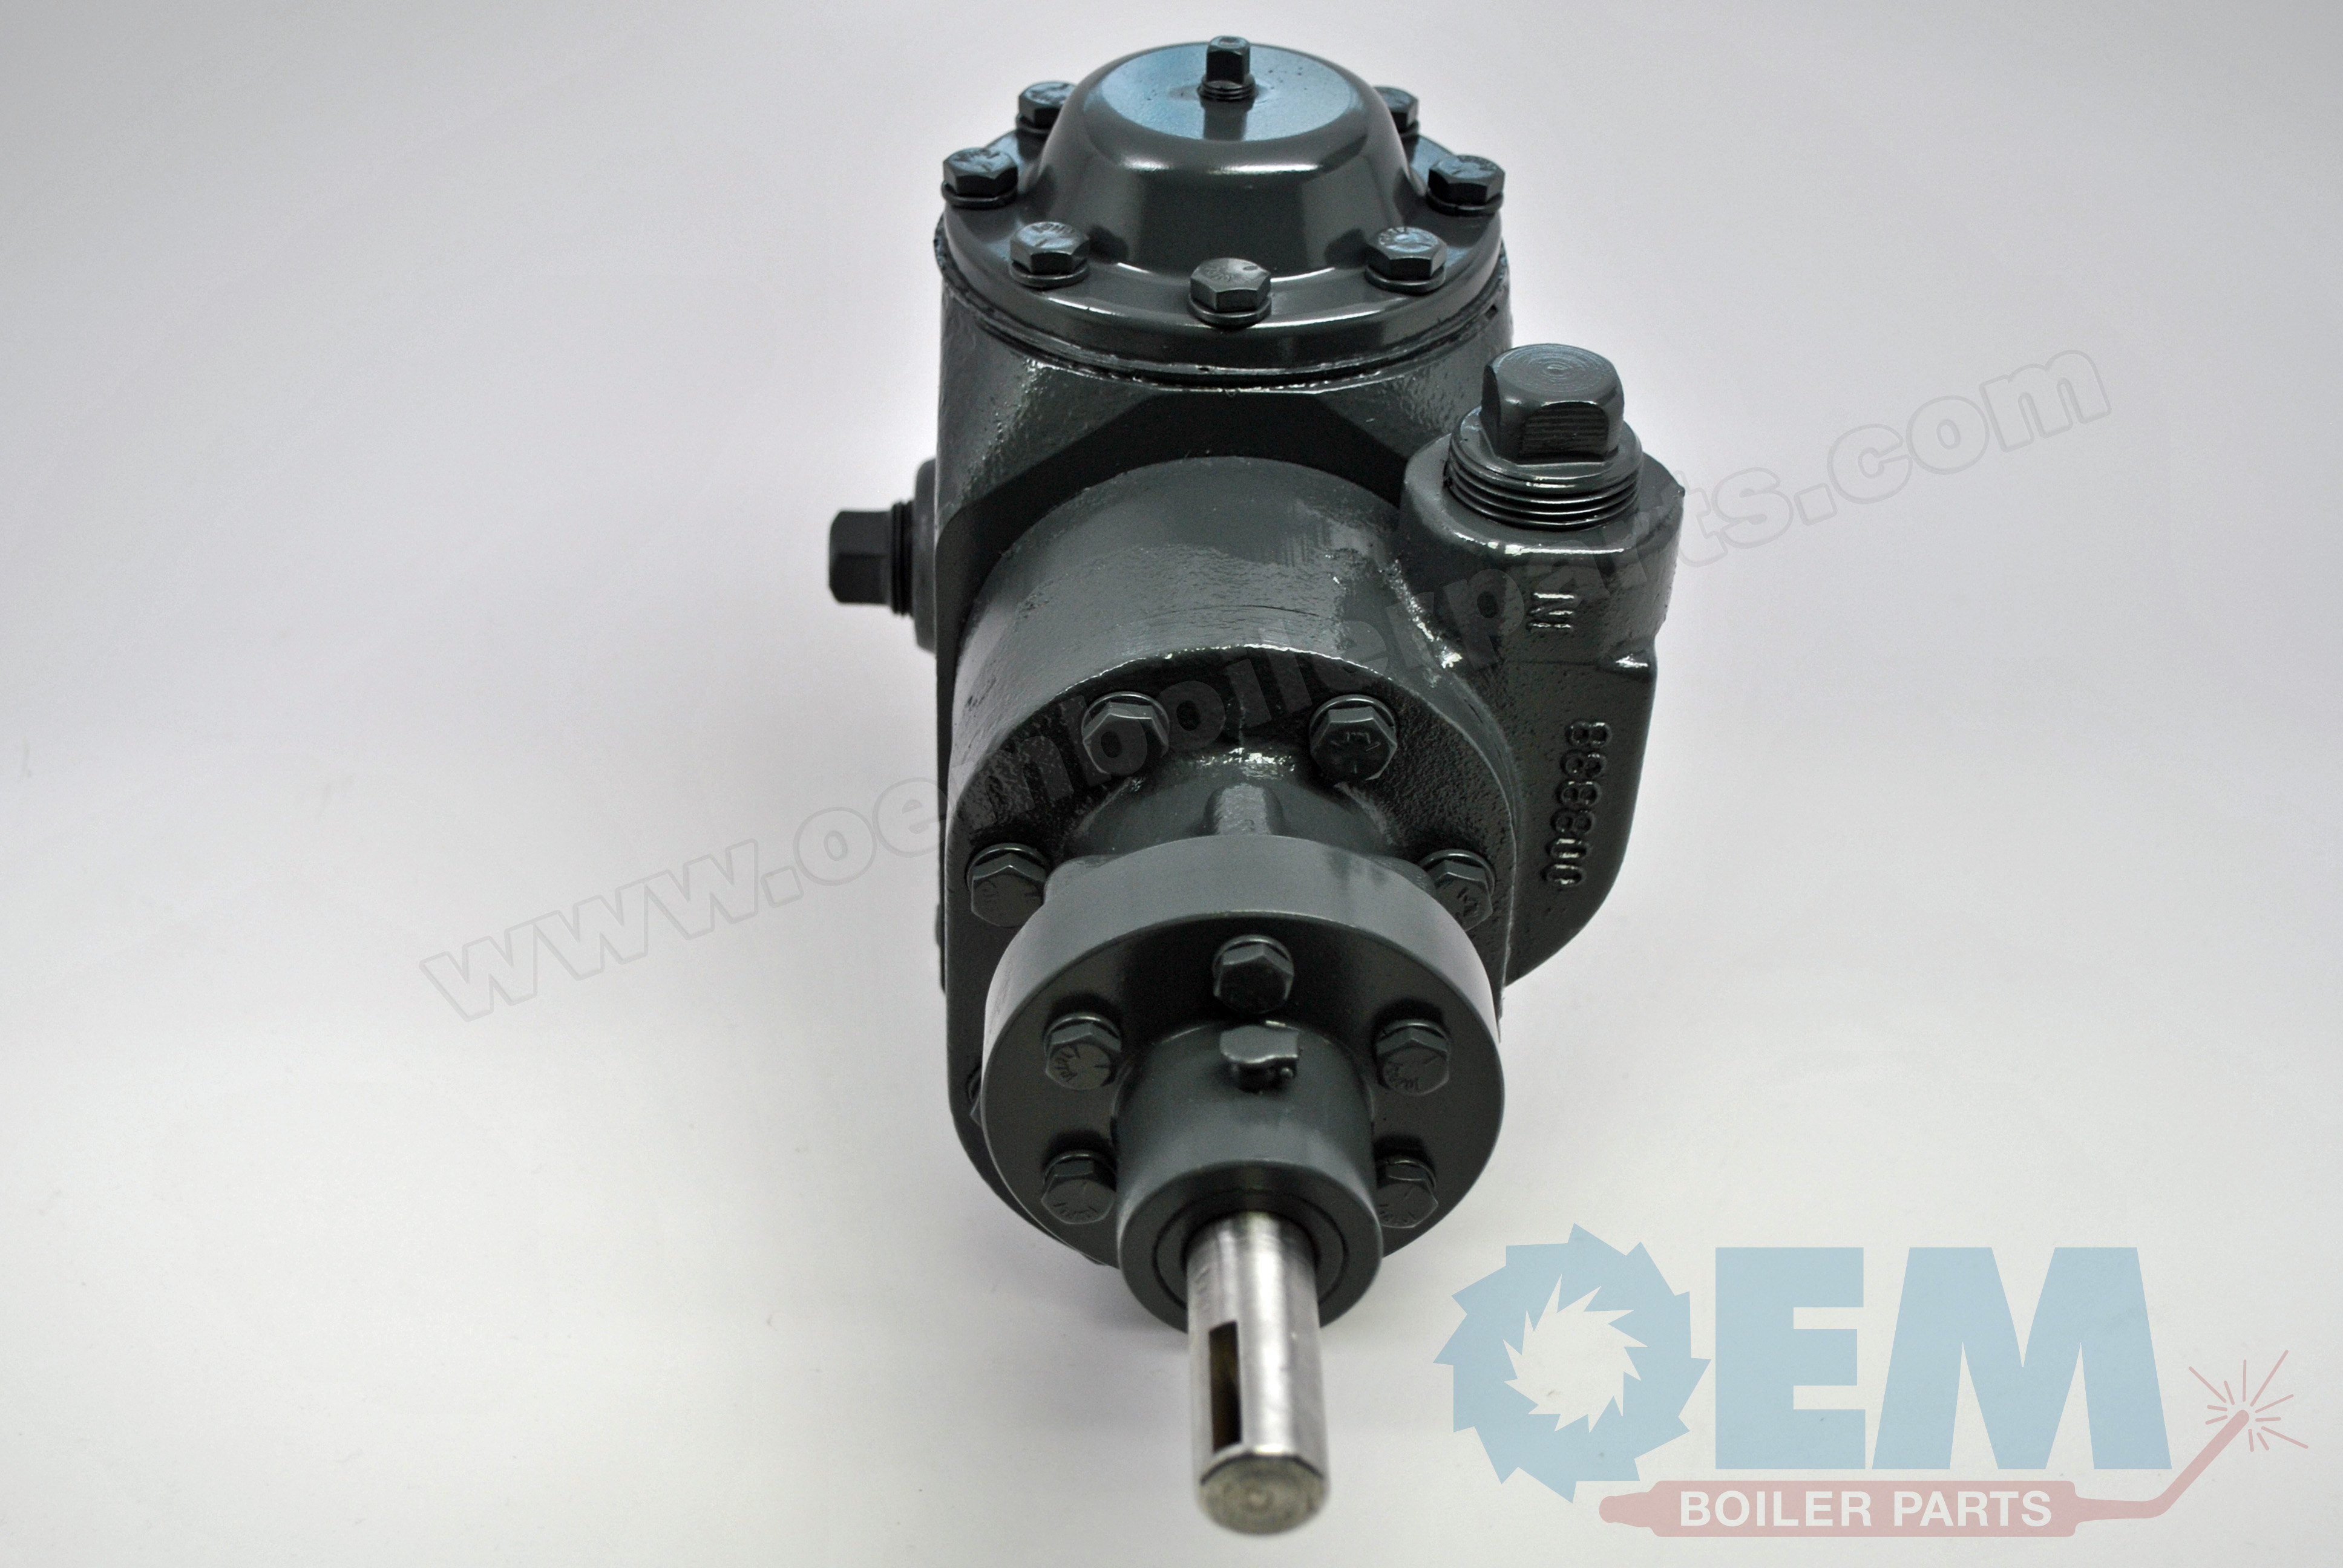 Parts Of An Iron ~ Oil pumps